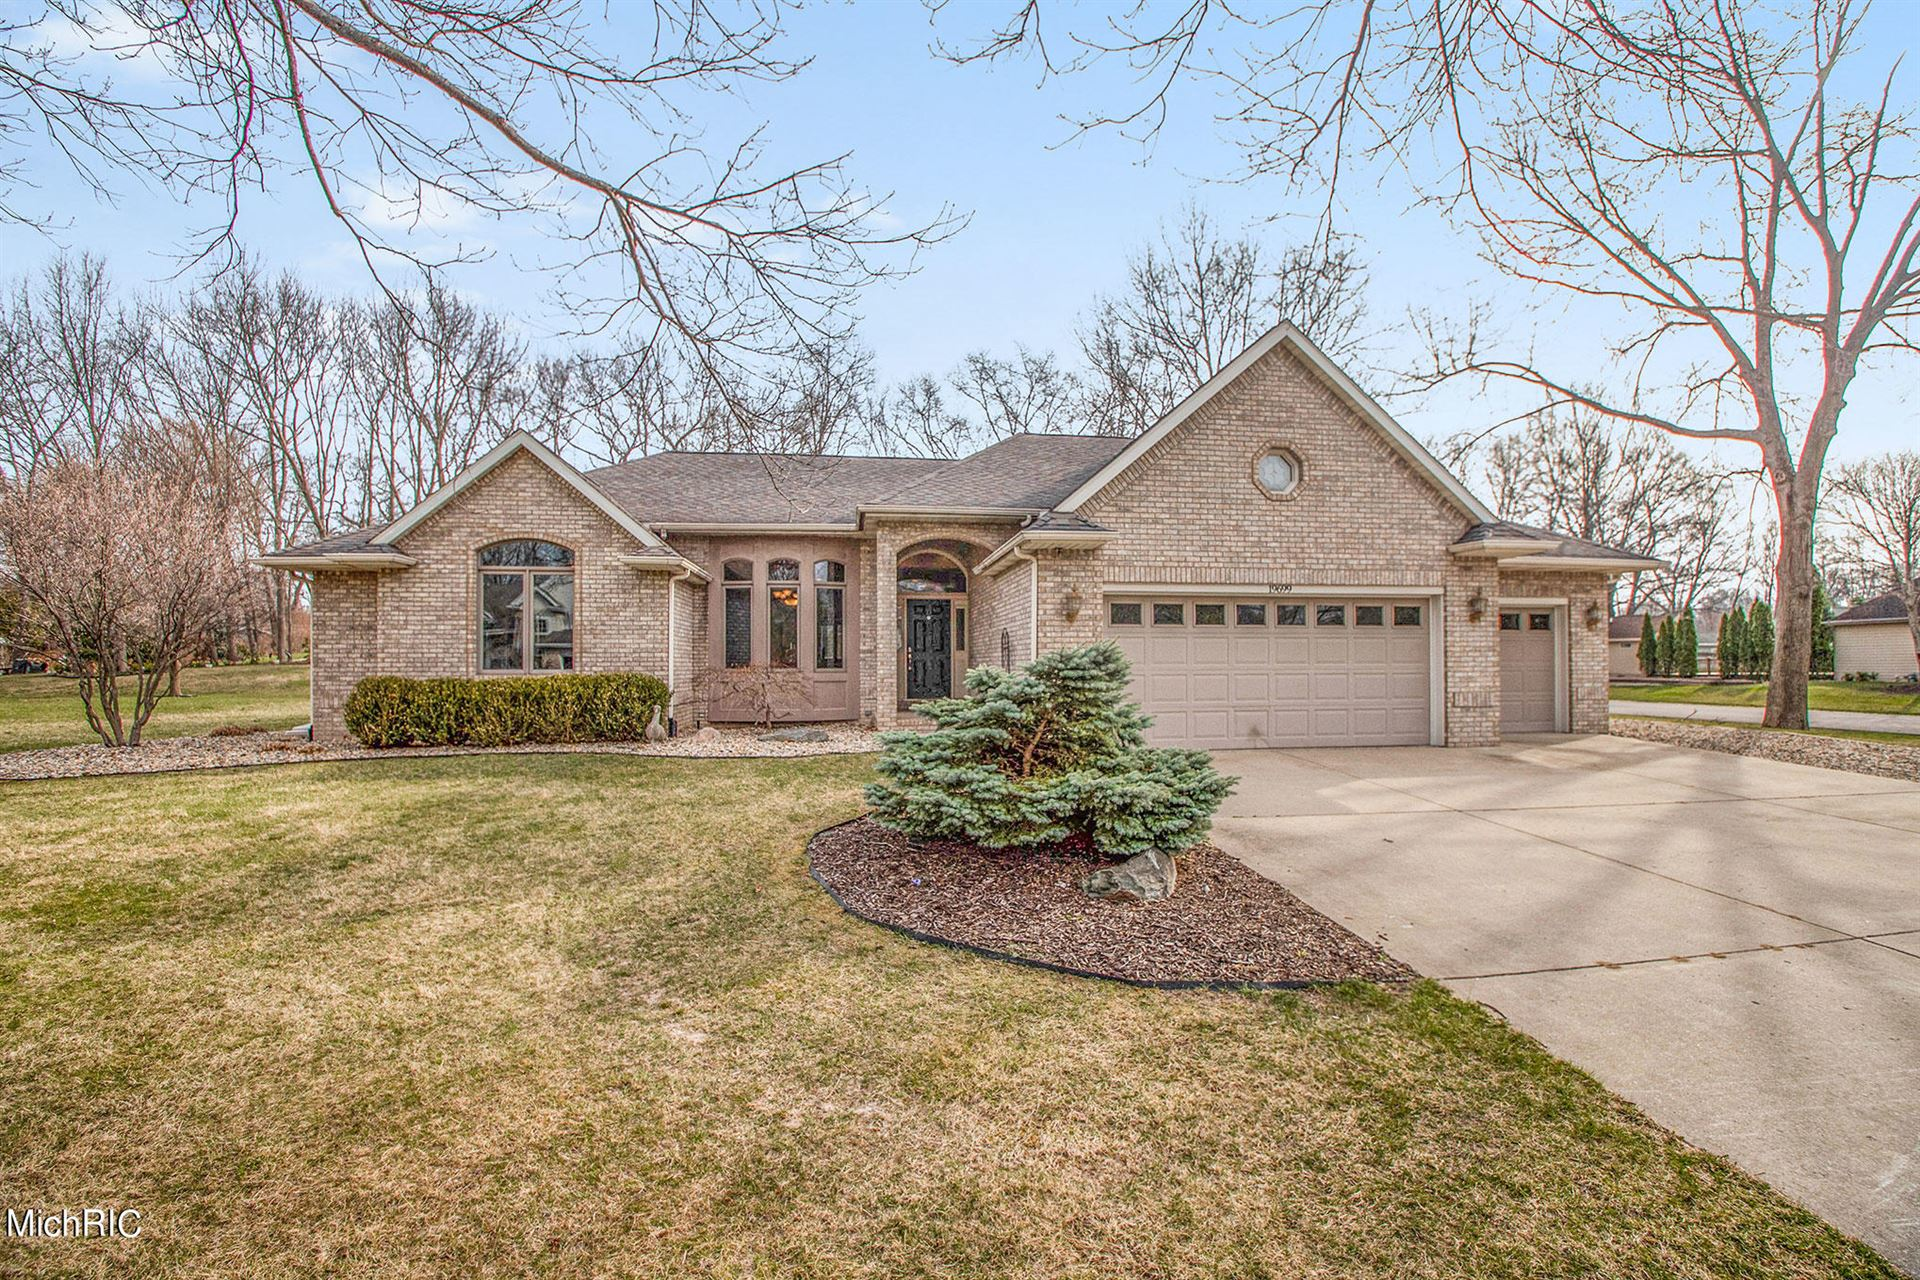 19699 Dogwood Drive, New Buffalo, MI 49117 - MLS#: 21011195